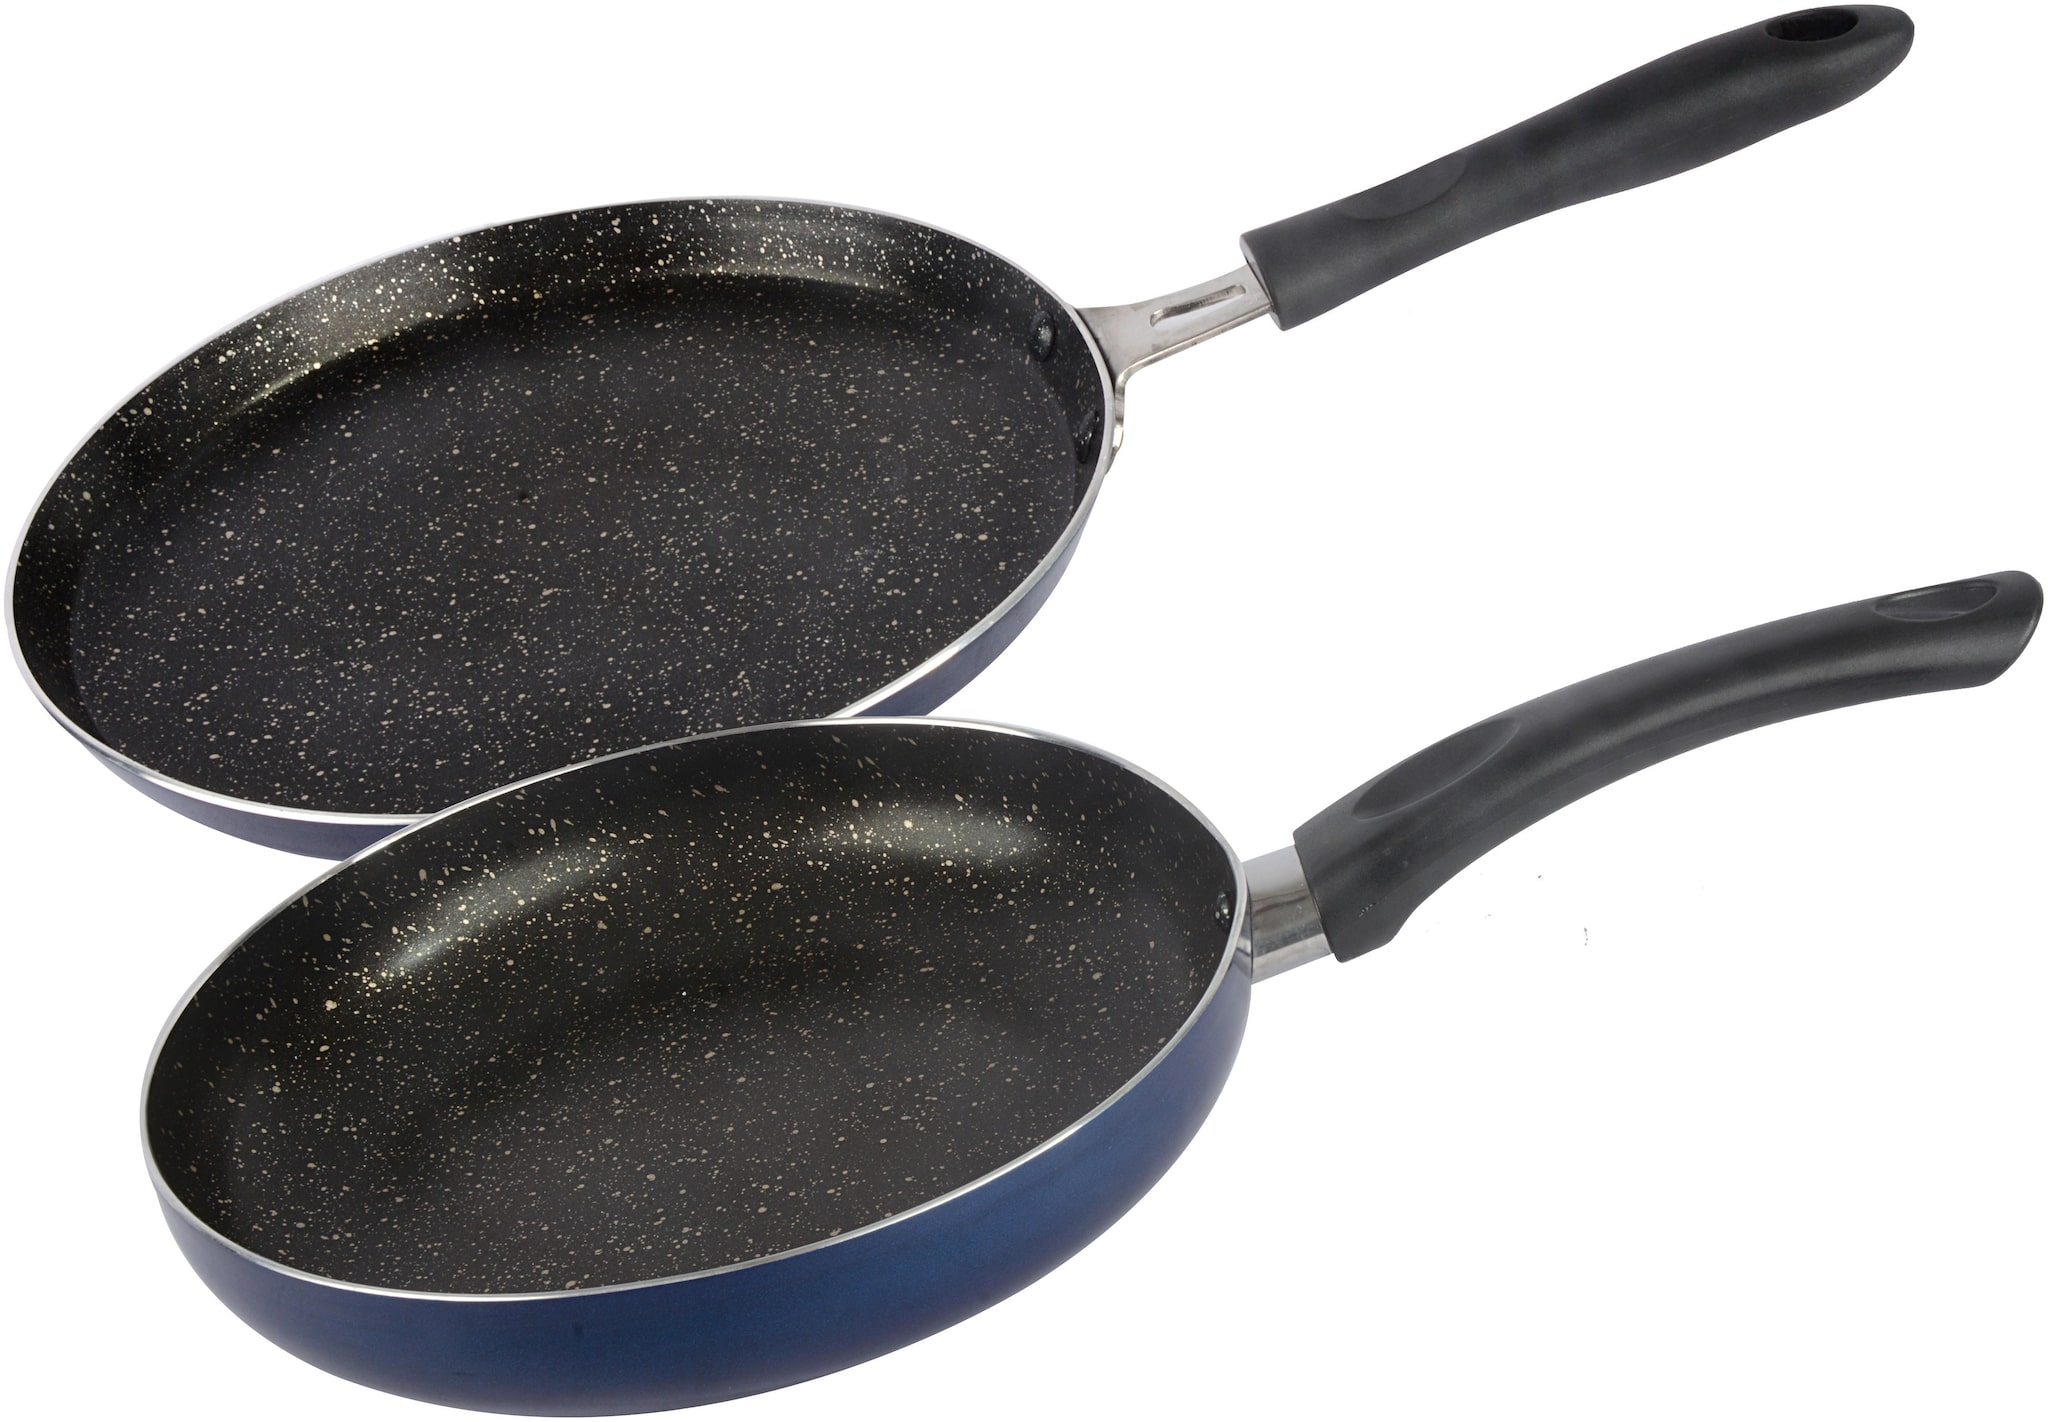 Ethical Mastreo Series without Induction Base Non Stick Dosa Tawa   Fry Pan cookware Set / 2 Pcs Cookware set.